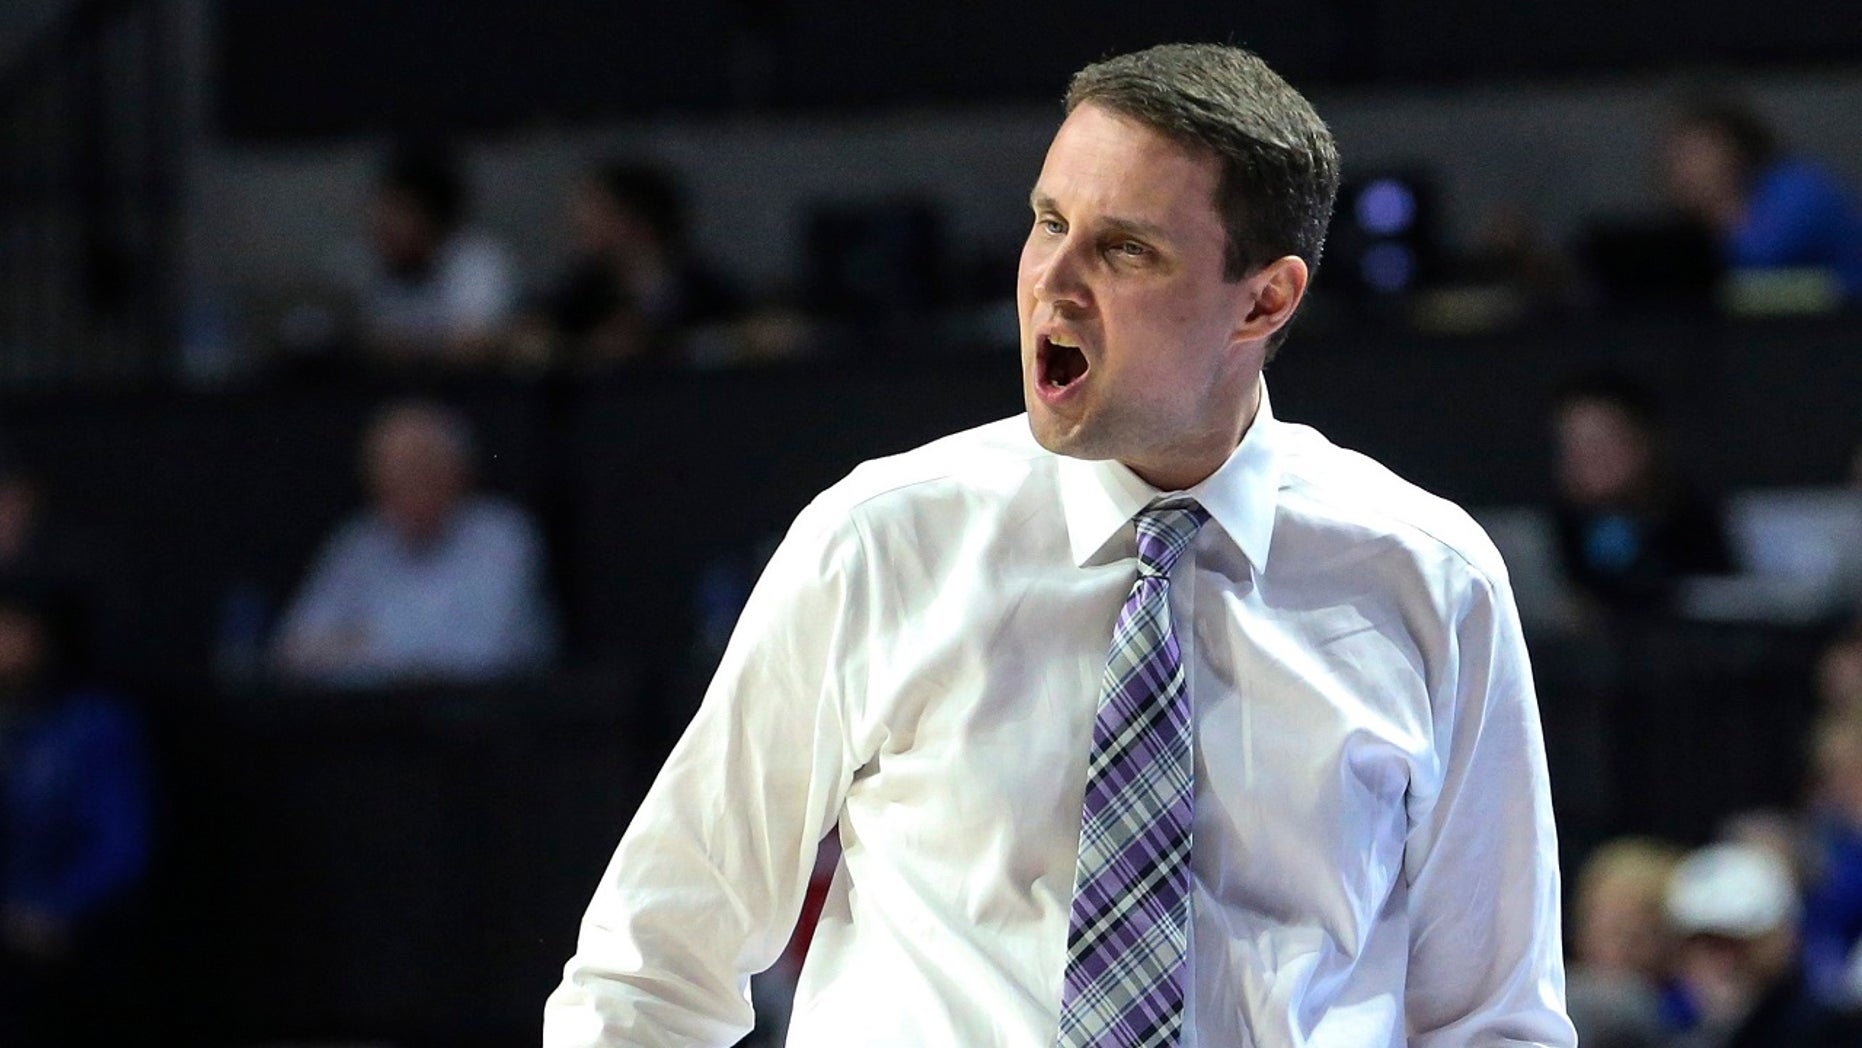 LSU coach Will Wade shouts during the first half of the team's NCAA college basketball game against Florida in Gainesville, Fla., Wednesday, March 6, 2019.